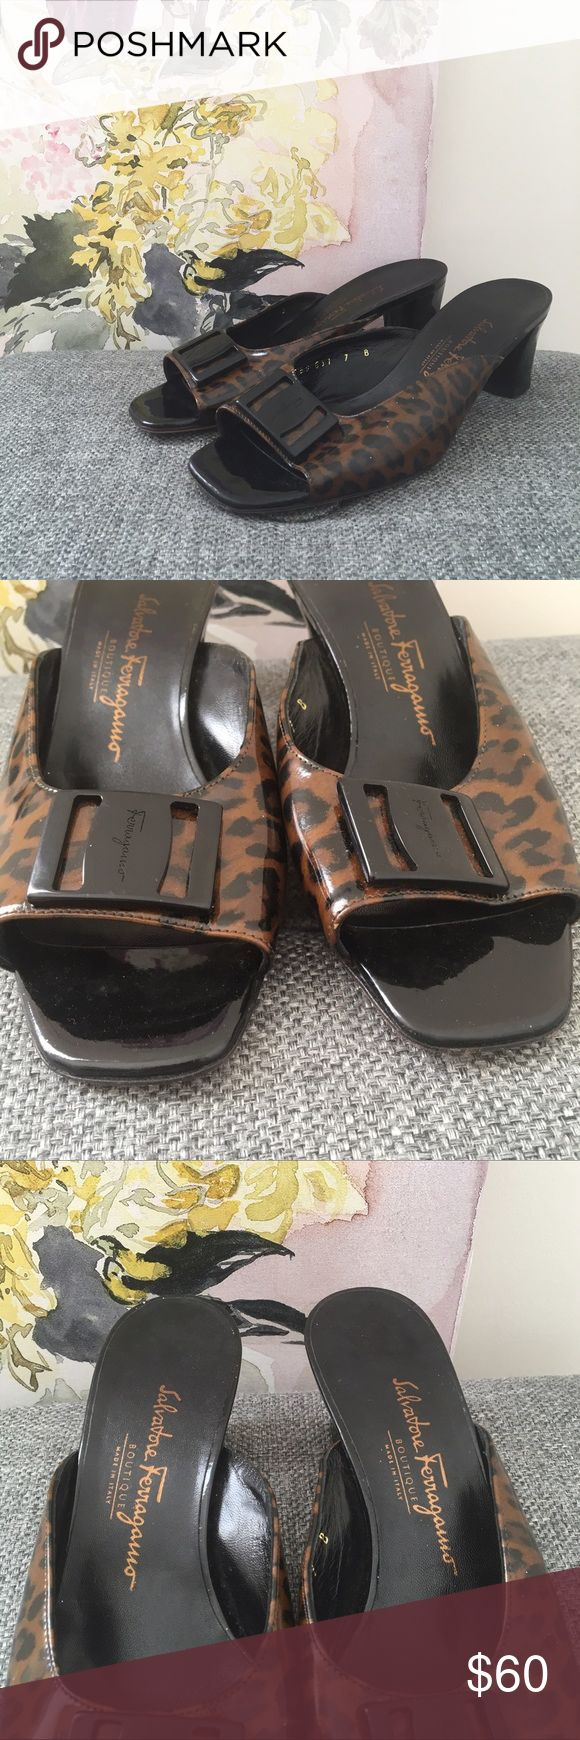 """Salvator Ferragamo Leopard Wedge Buckle Slip On In a beautiful patent leather print, these buckle slip on wedges are a beautiful shoe. The leather material is lovely. In great condition. 2.25"""" heel. 60116 Salvatore Ferragamo Shoes Heels"""